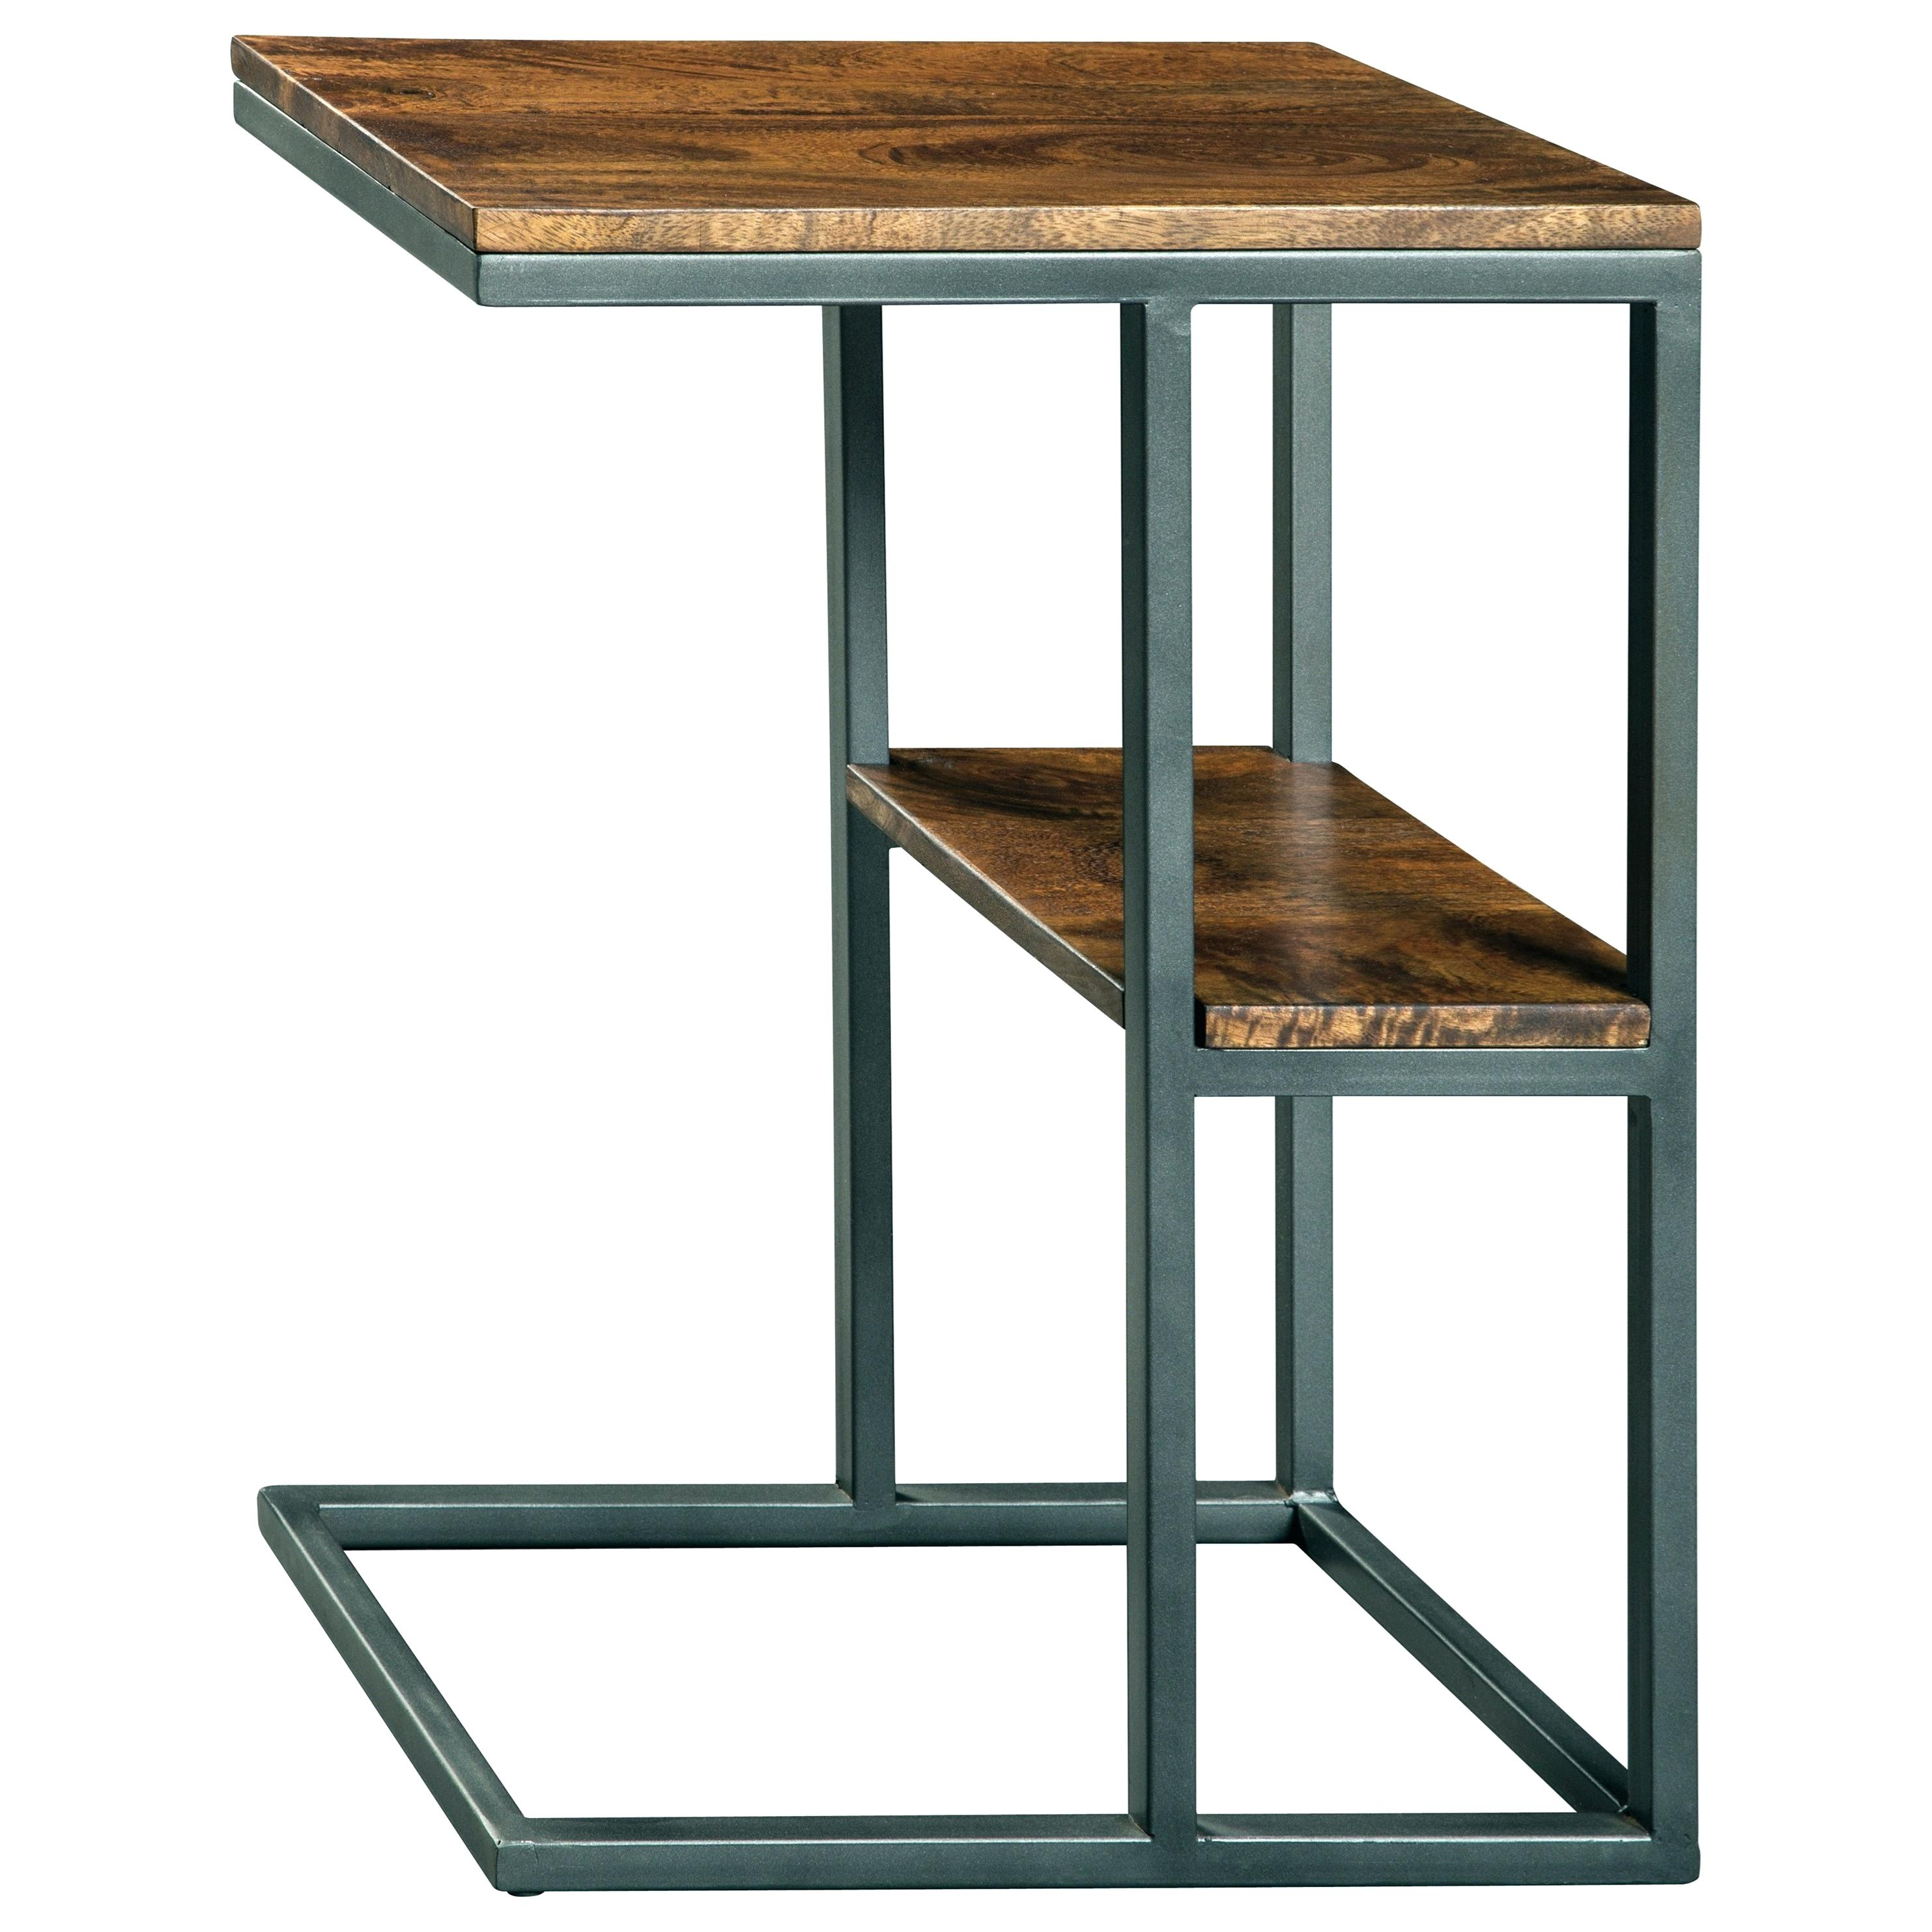 contemporary accent table western tables modern signature design all with drawer large square coffee outdoor dining bench frog shuffleboard light high patio chairs weber kettle